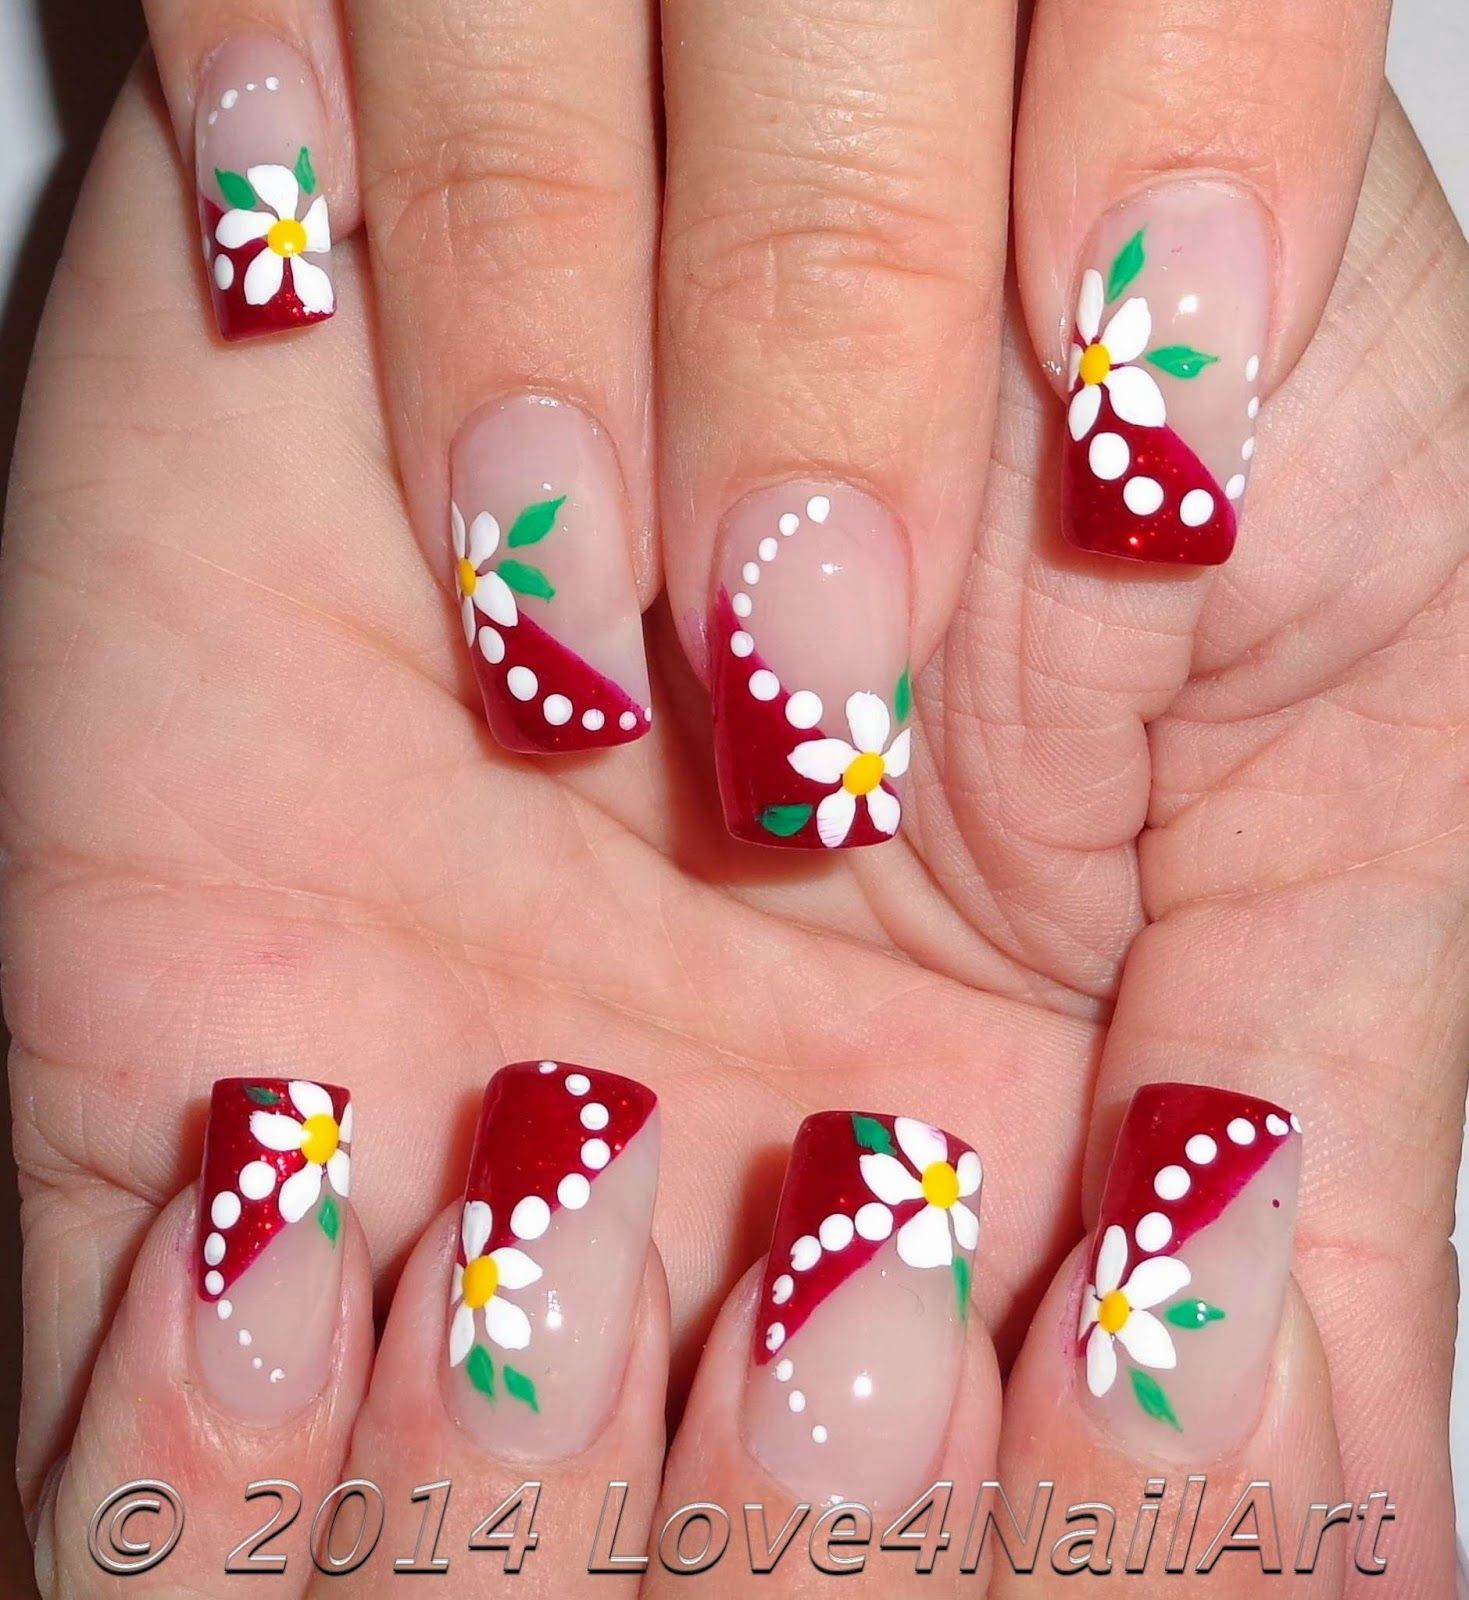 French Fussnägel Bilder Love4nailart Red Glitter French With Floral Nail Art Nagel